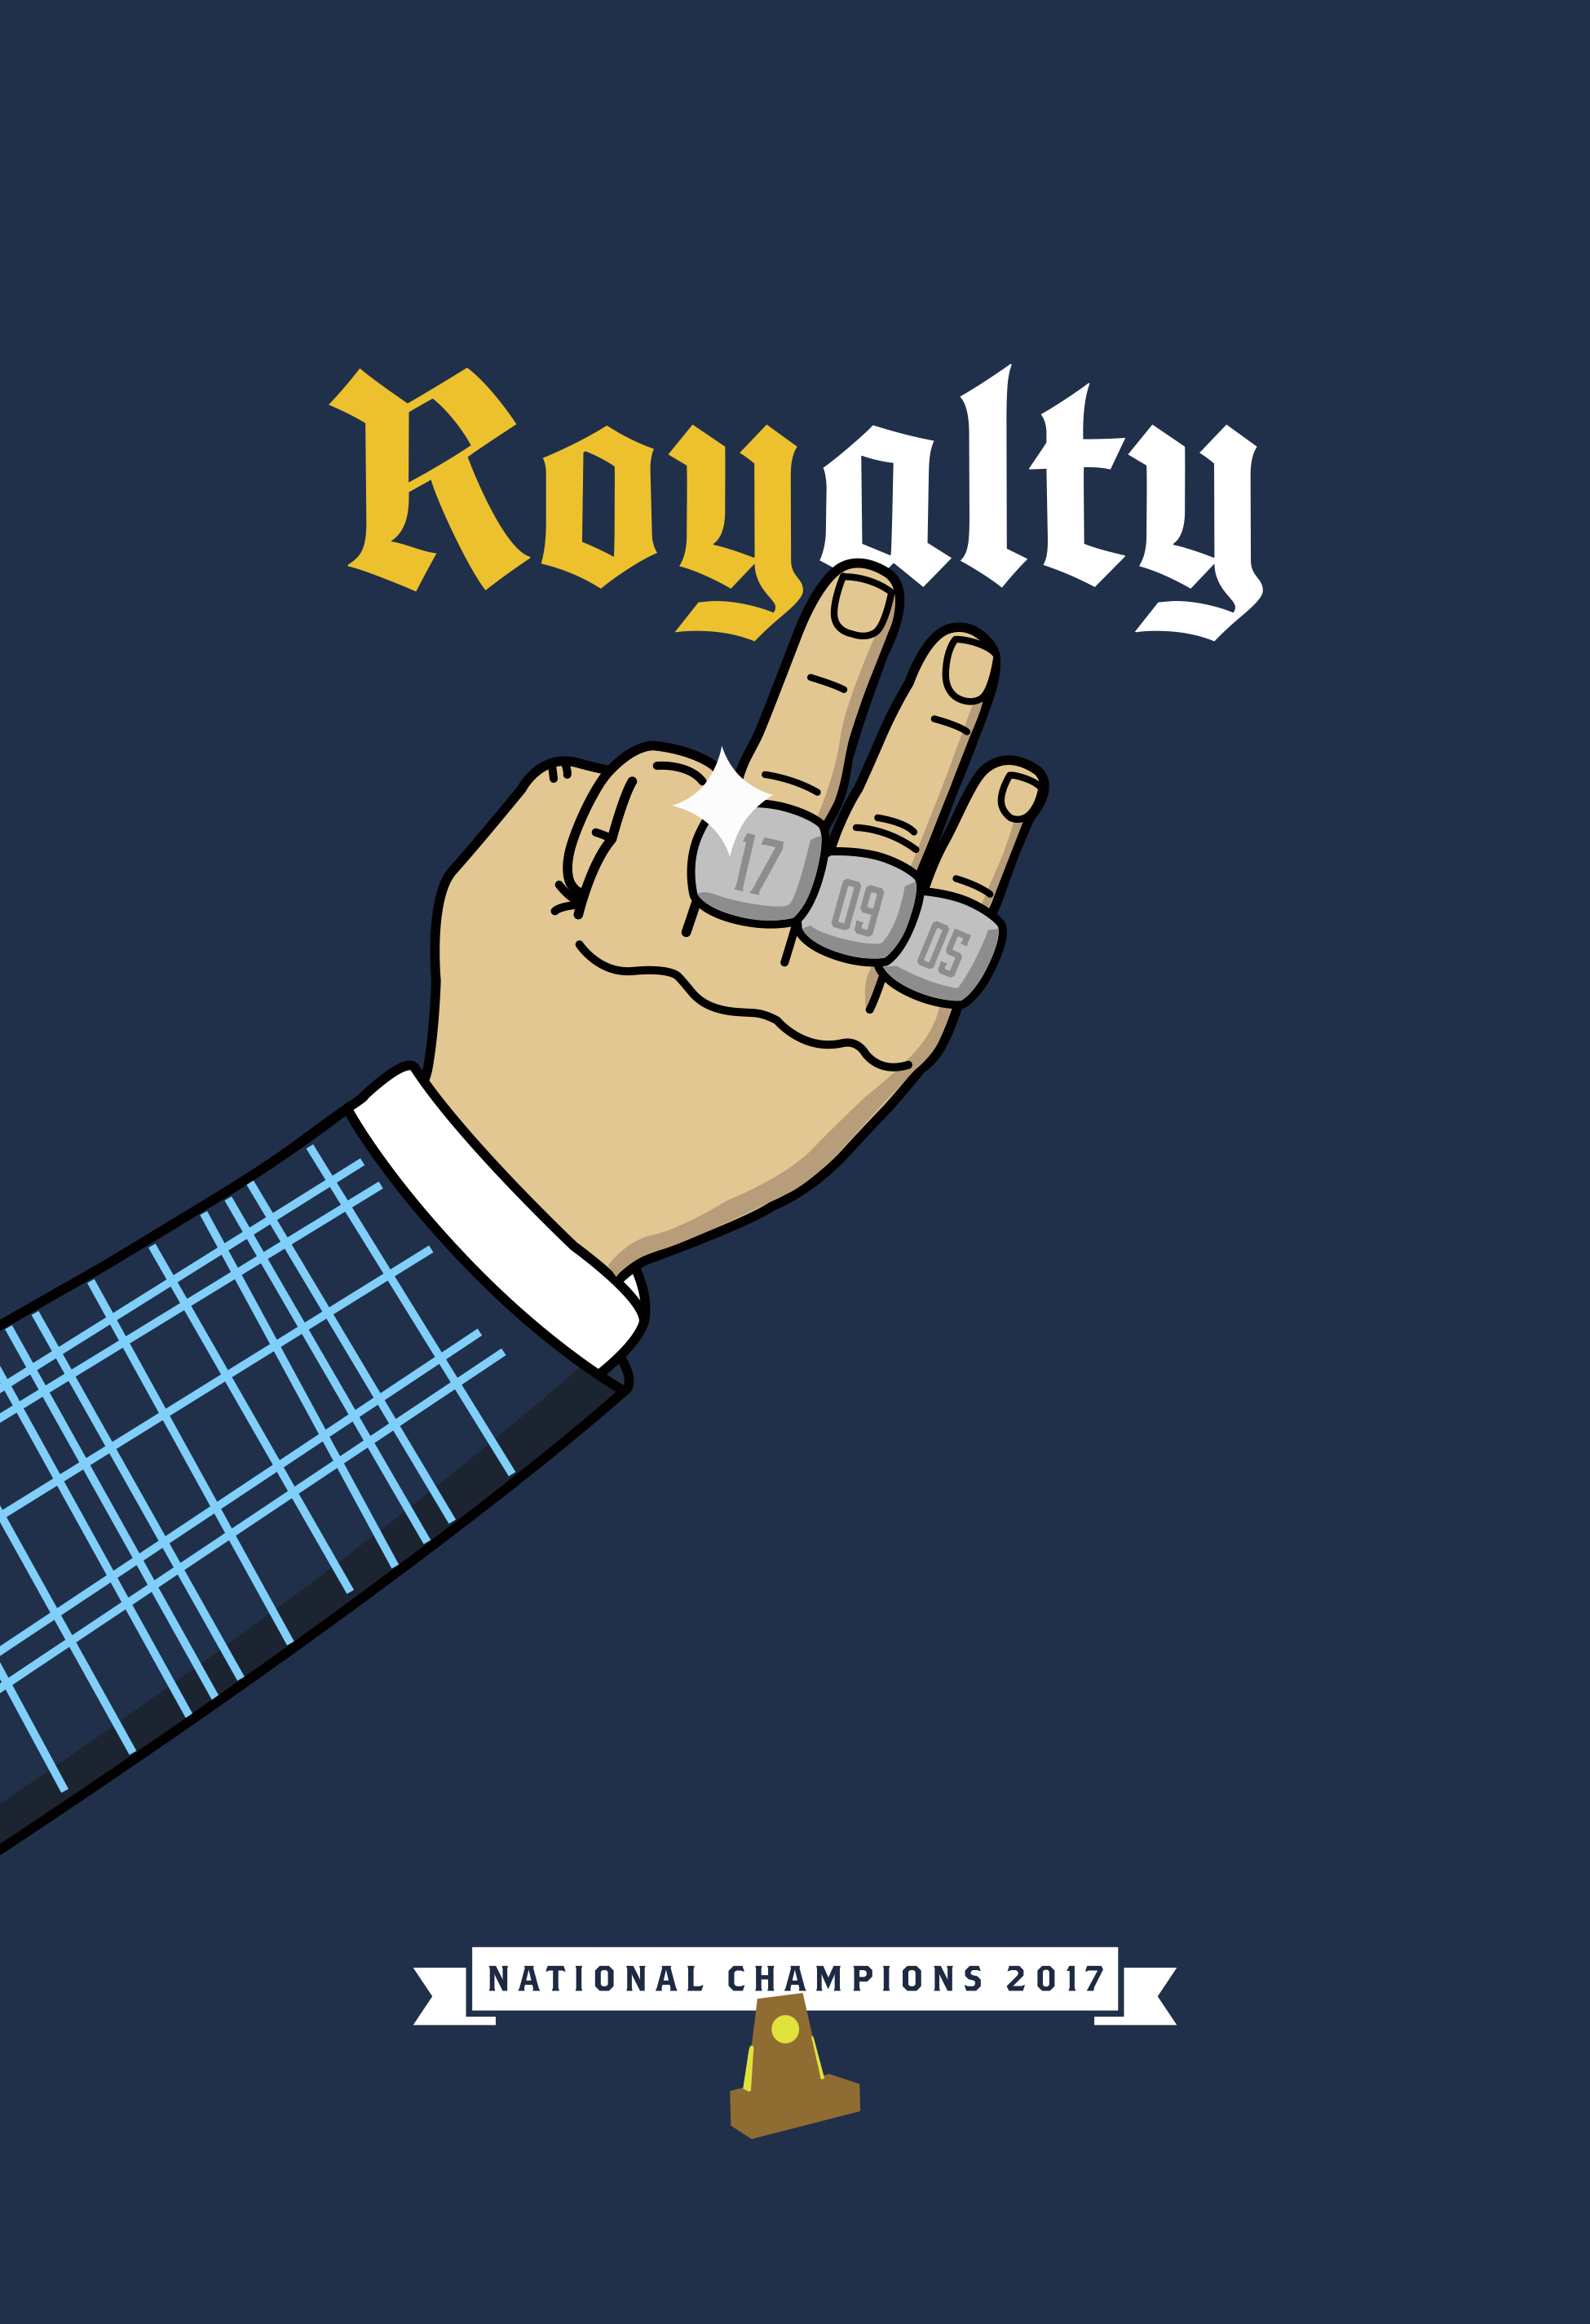 royalty_poster_file.jpg